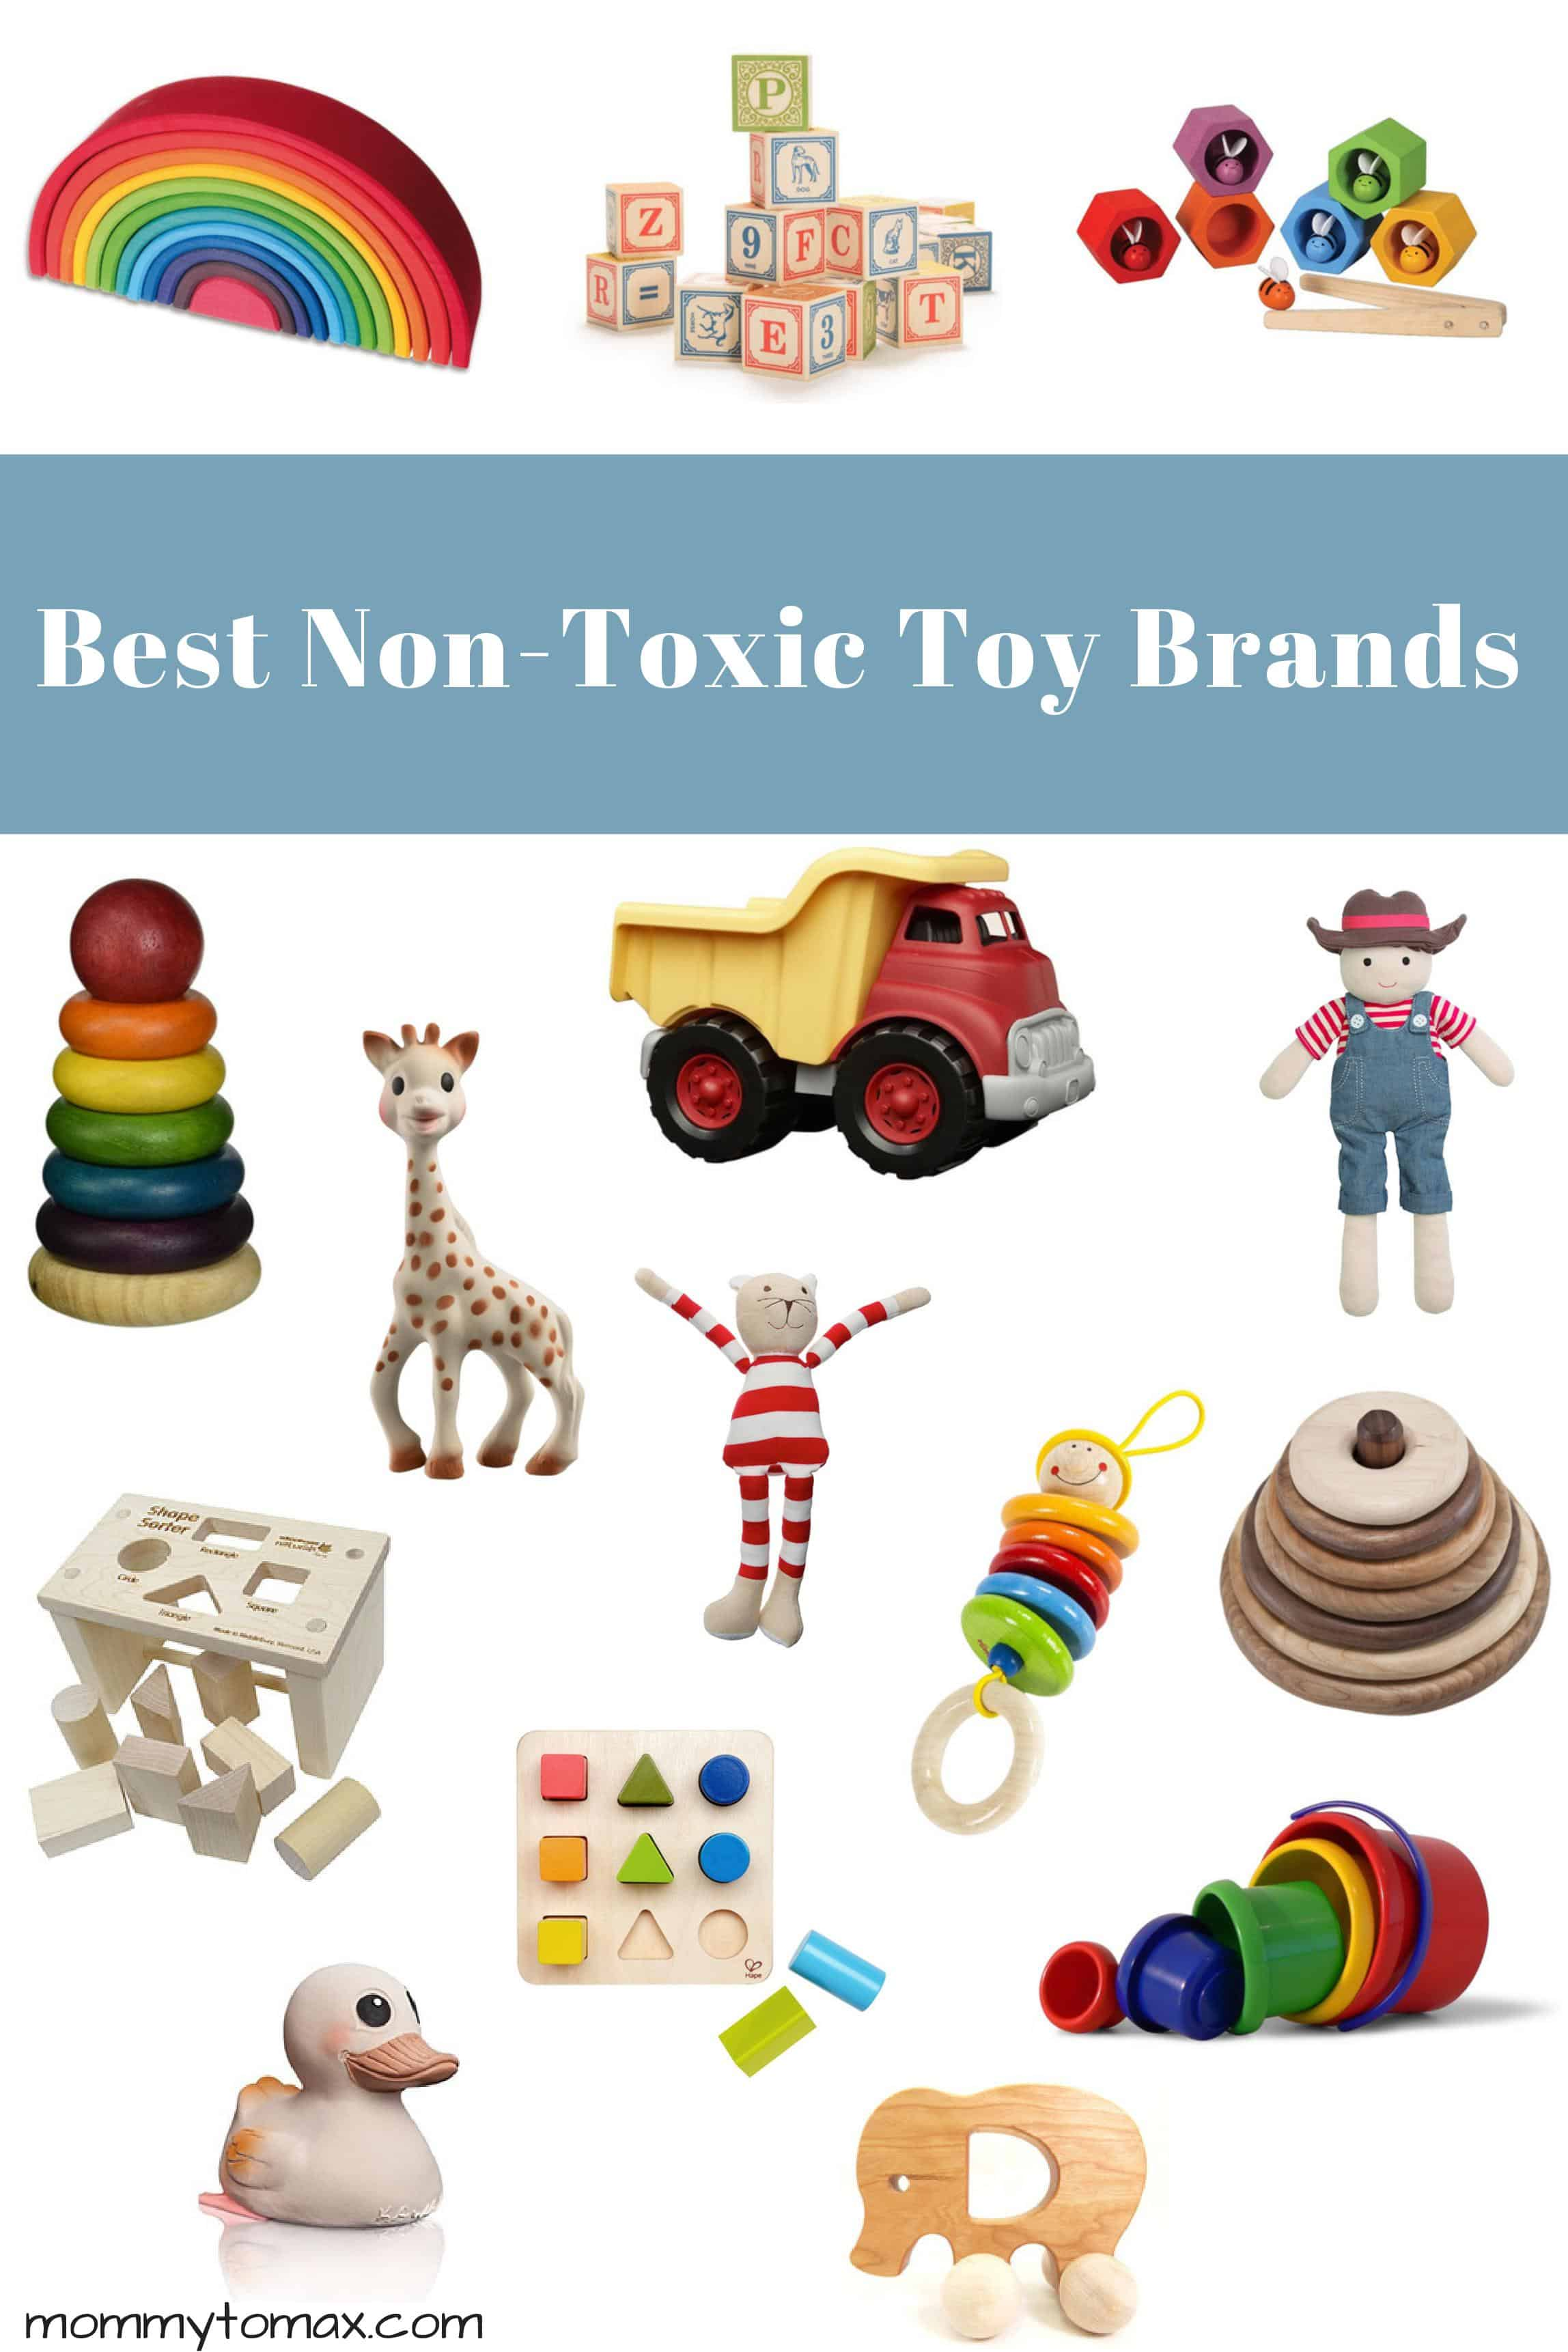 The 8 Least Toxic Items You Can Get At The Dollar Store The 8 Least Toxic Items You Can Get At The Dollar Store new pics